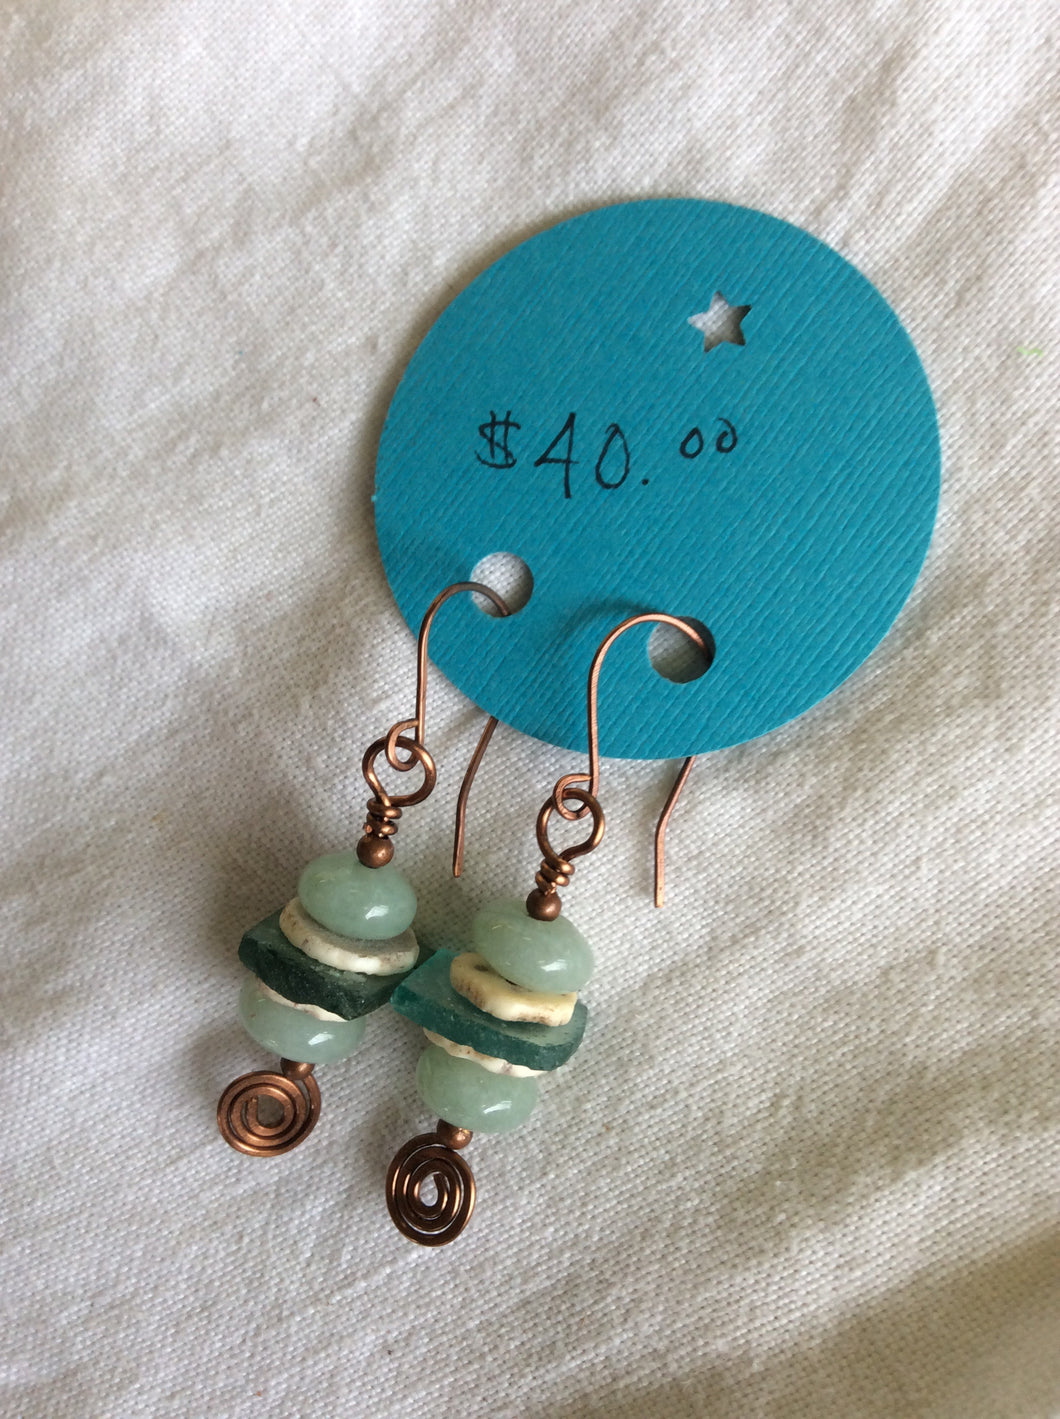 Copper, Ancient Roman glass, ostrich egg shell, and aventurine earrings.